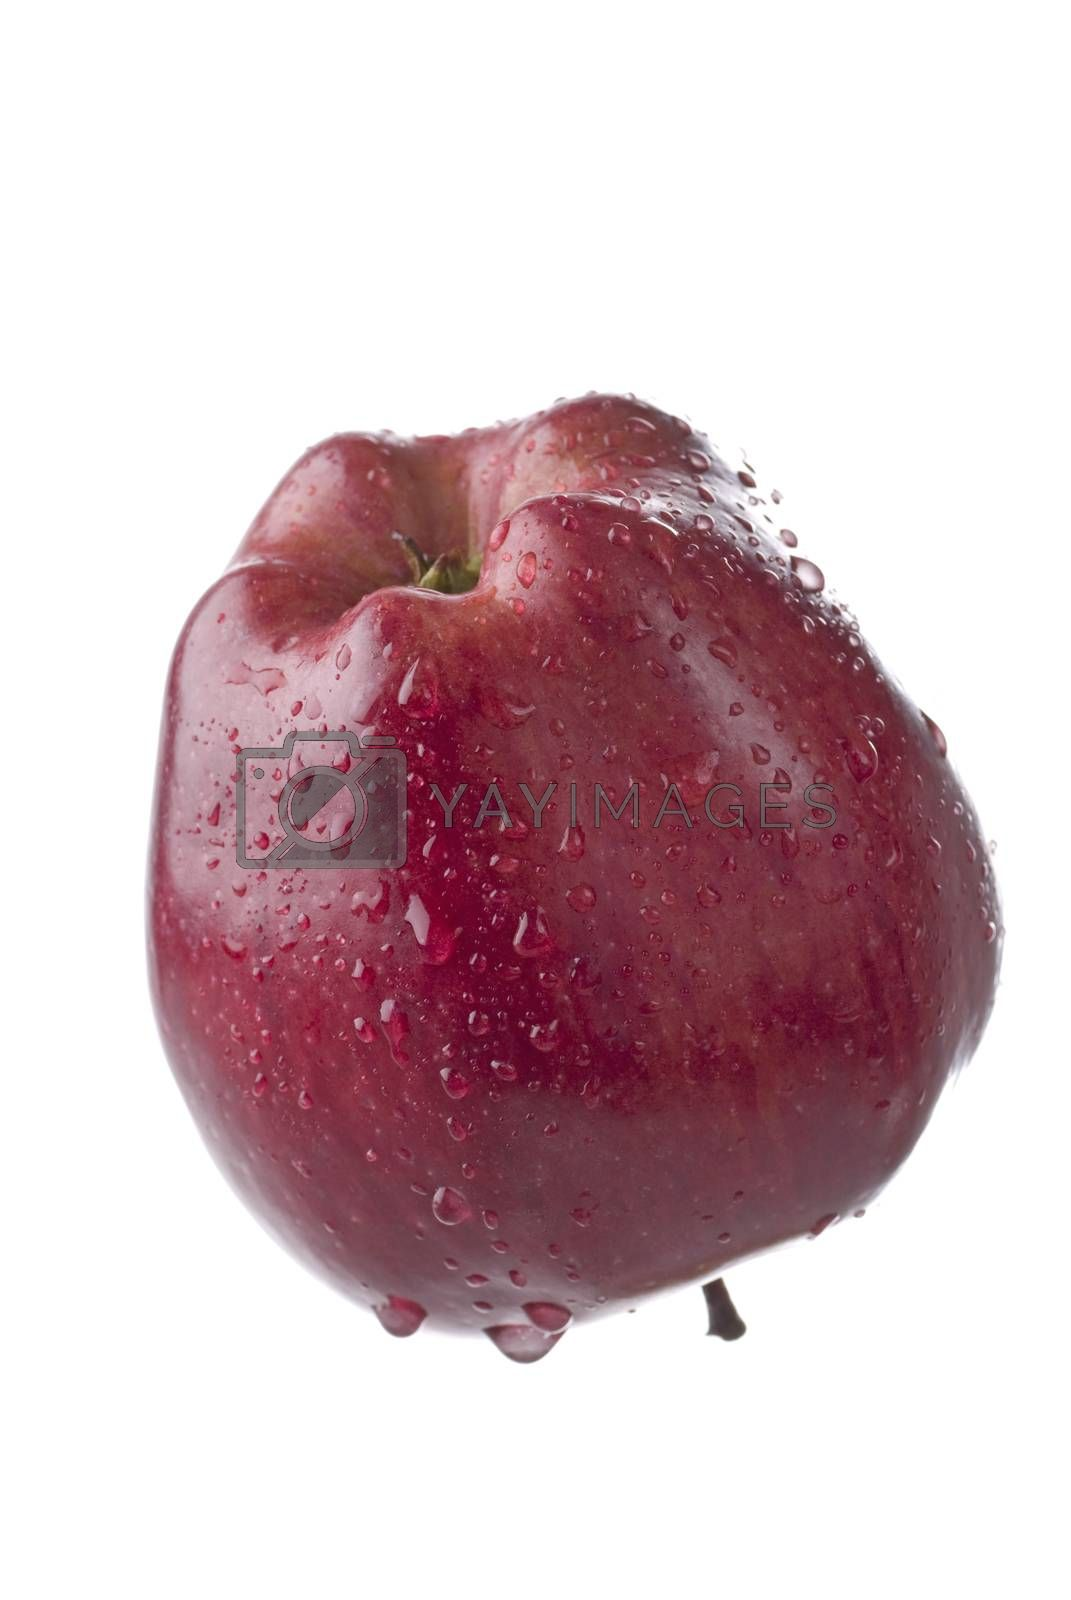 Royalty free image of Red Apple by ockra